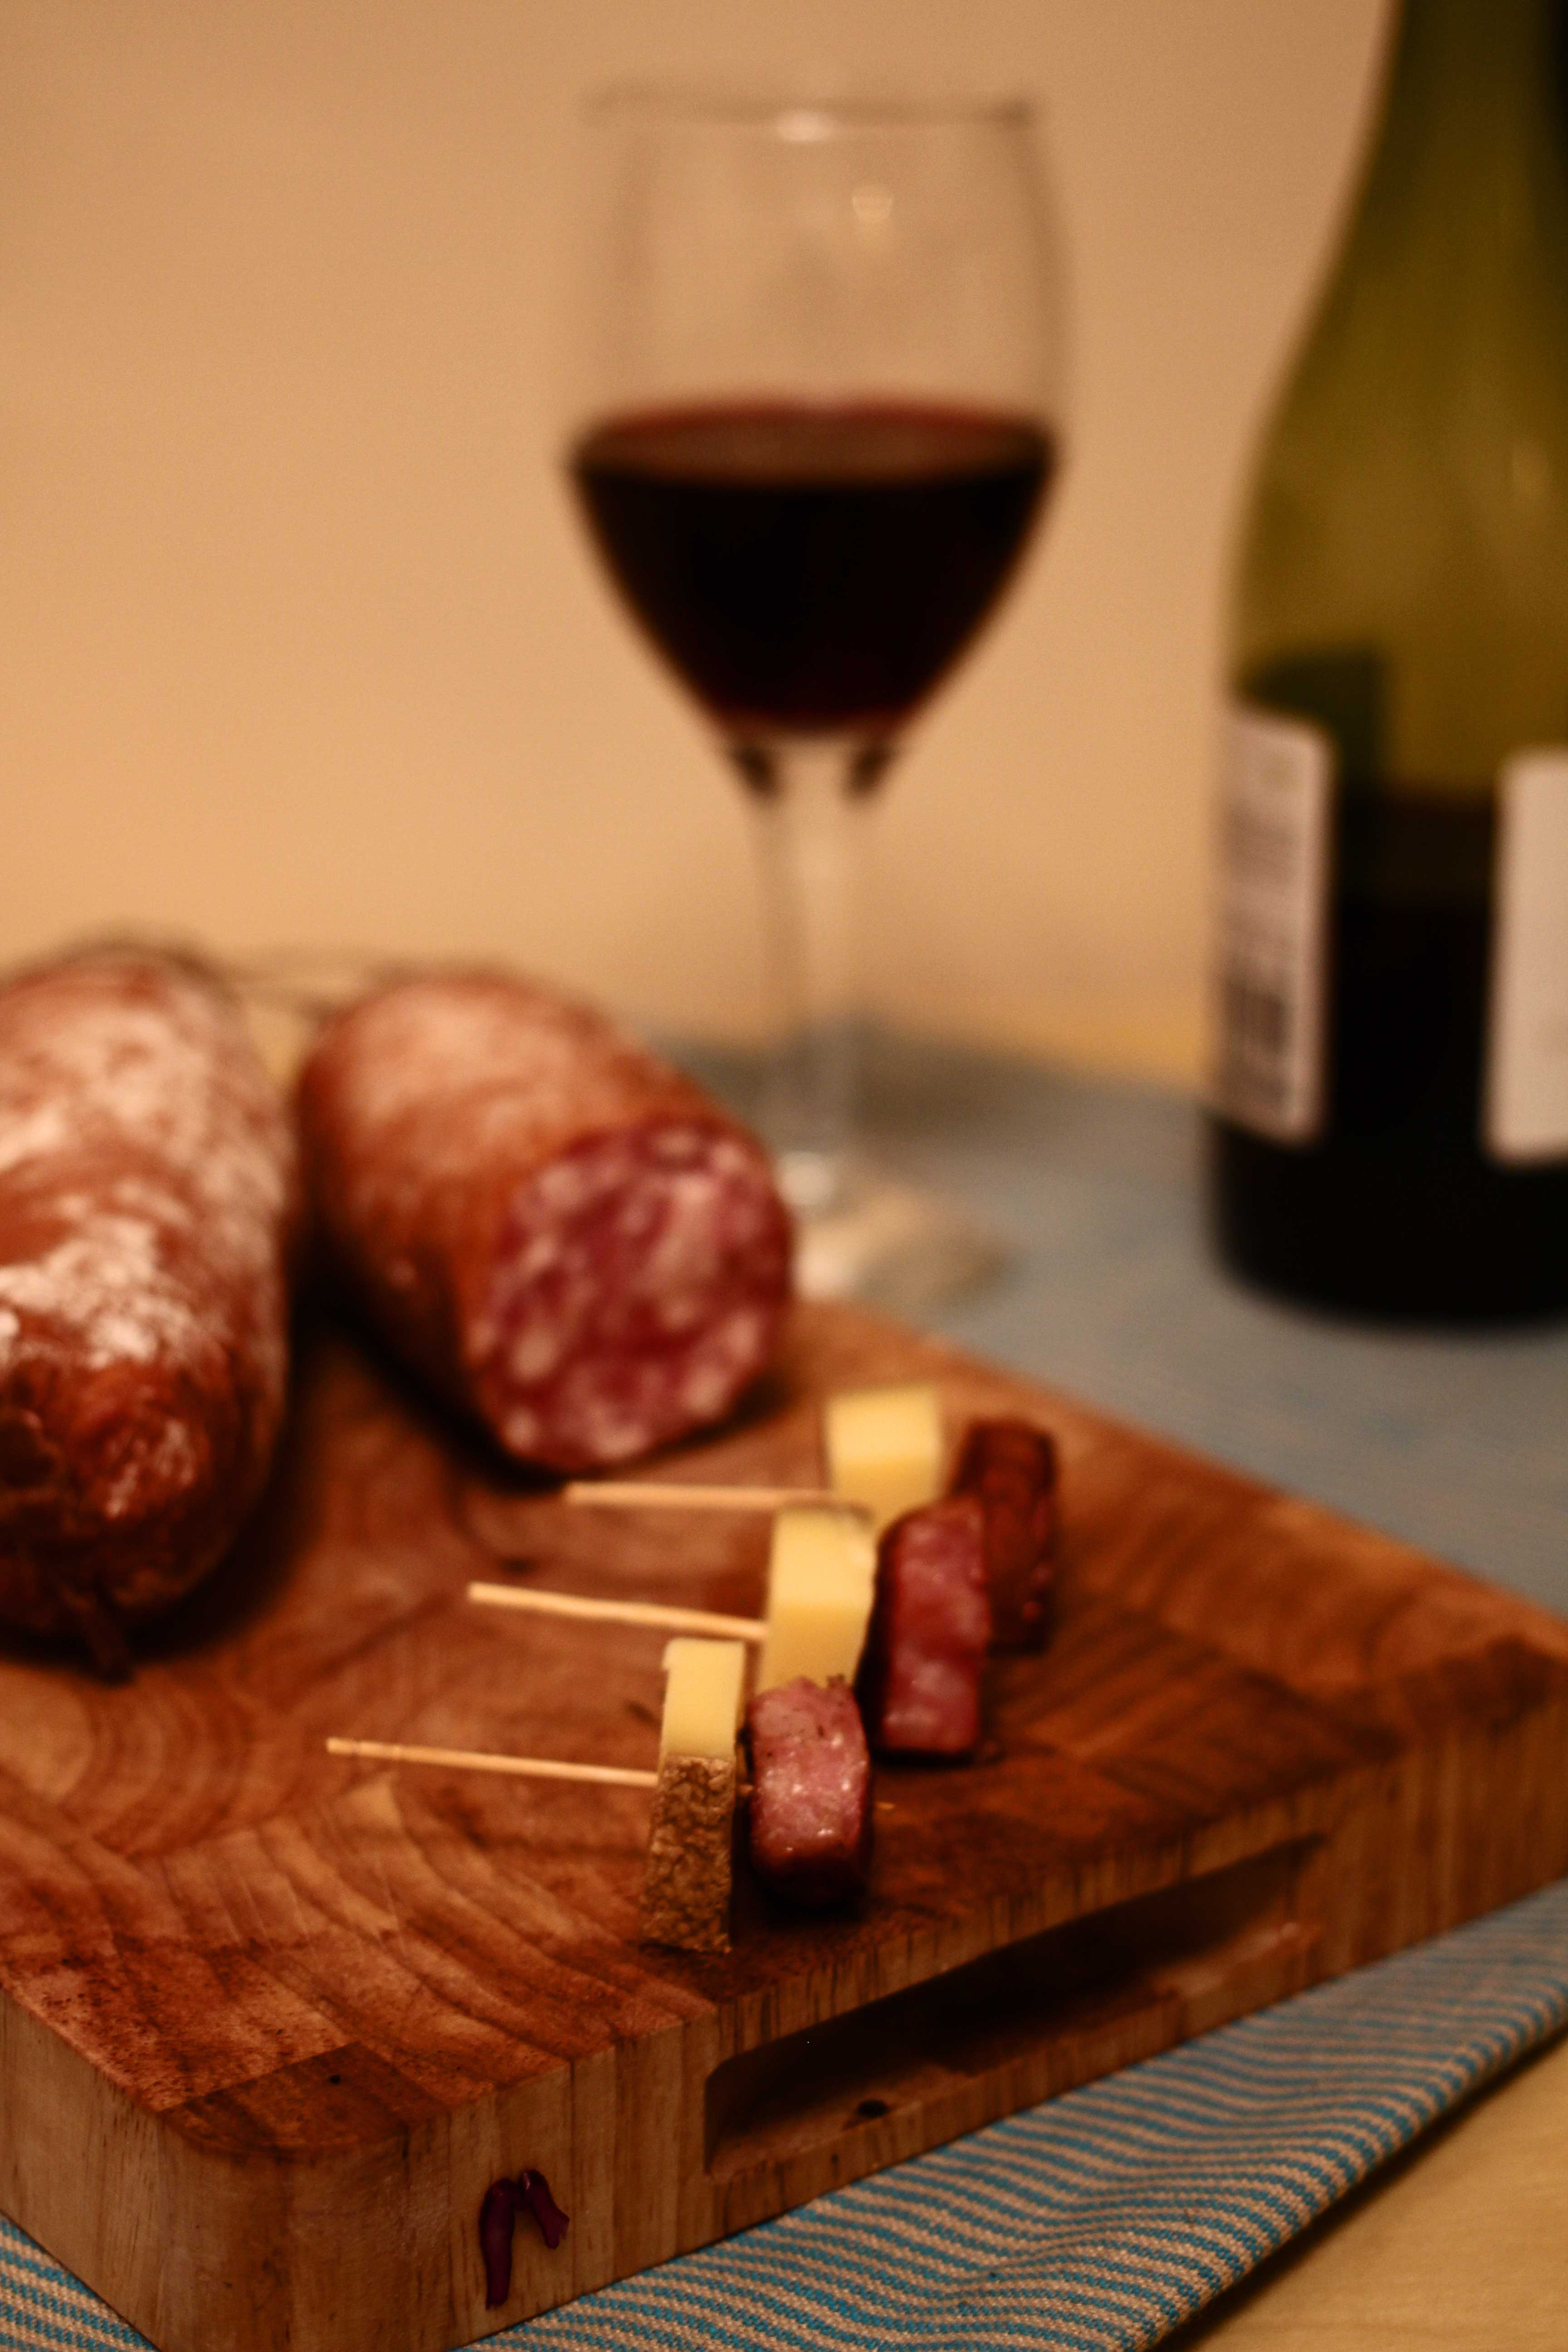 morteau smoked sausage and comt cheese. Black Bedroom Furniture Sets. Home Design Ideas